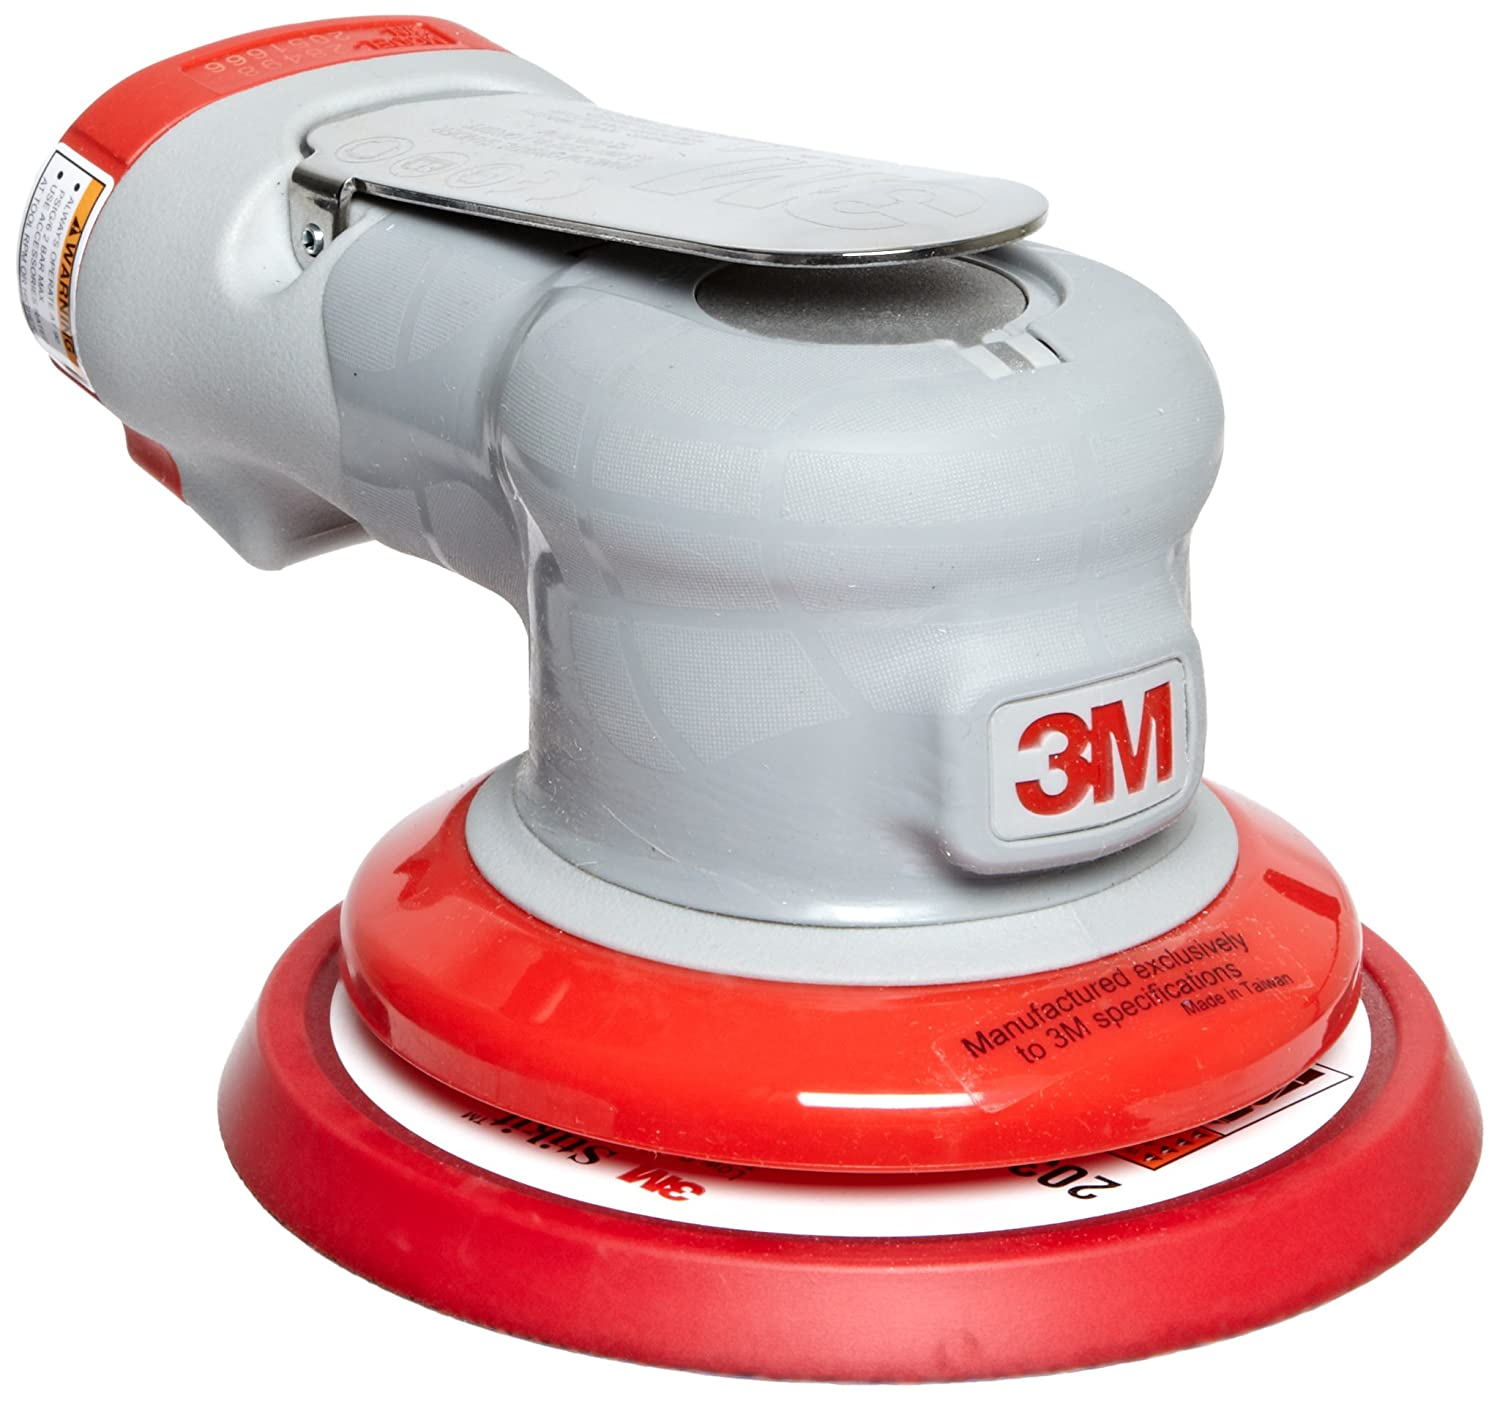 150 mm Silverline 580430 Air Sander and Polisher